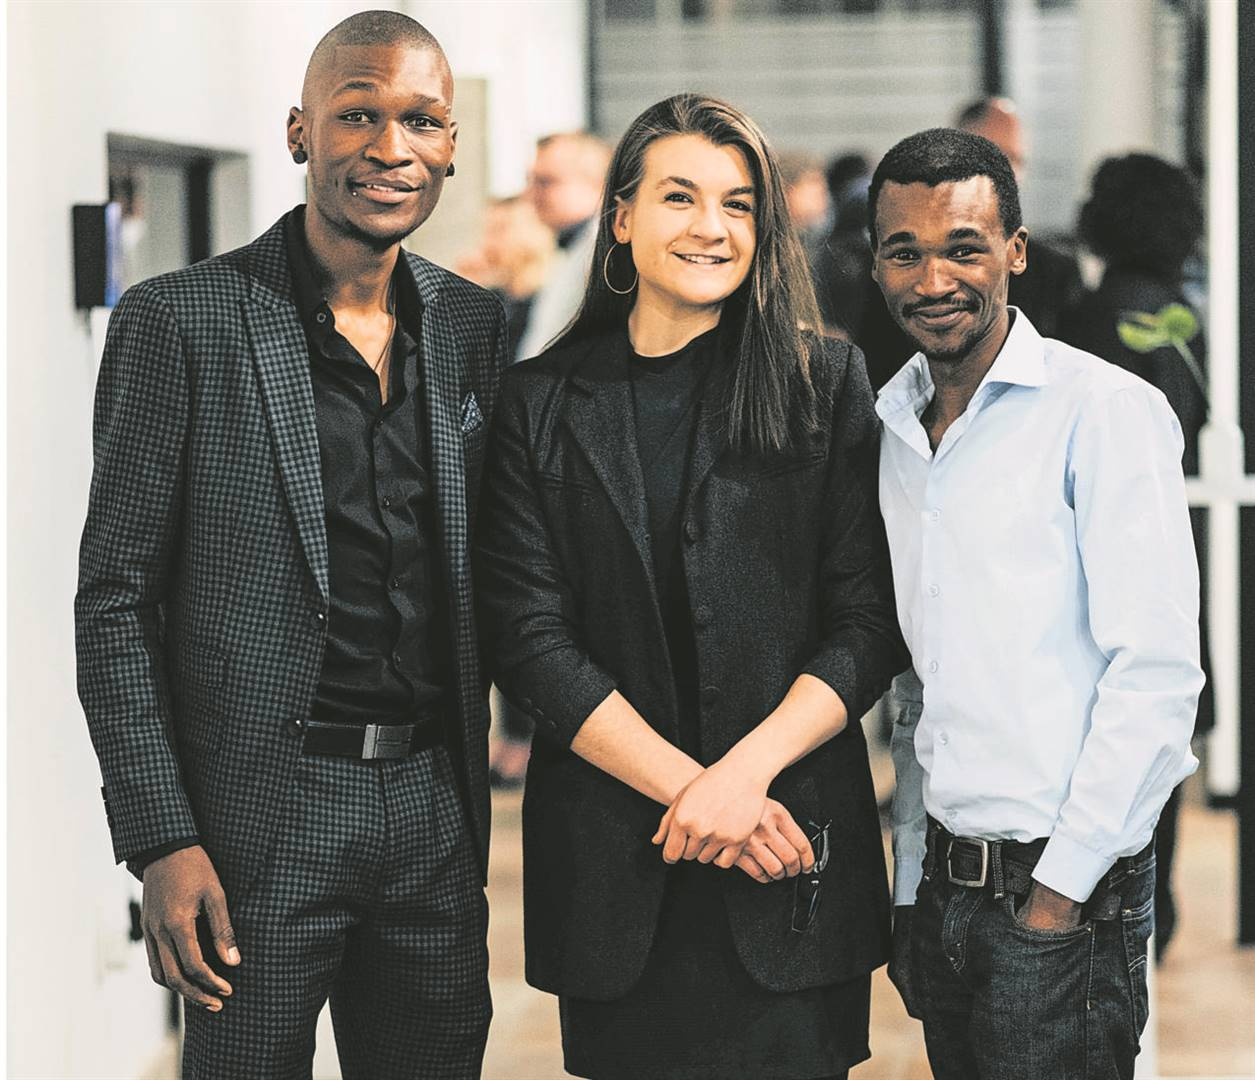 The New Breed winners' exhibition can be viewed by the public until Friday (23/08) at the law firm Phatshoane Henney's premises at 35 Markgraaff Street. Present at the launch are from the left the artists Xola Sello, Petra Schutte and Nkululeko Nkebe.Photo: Supplied